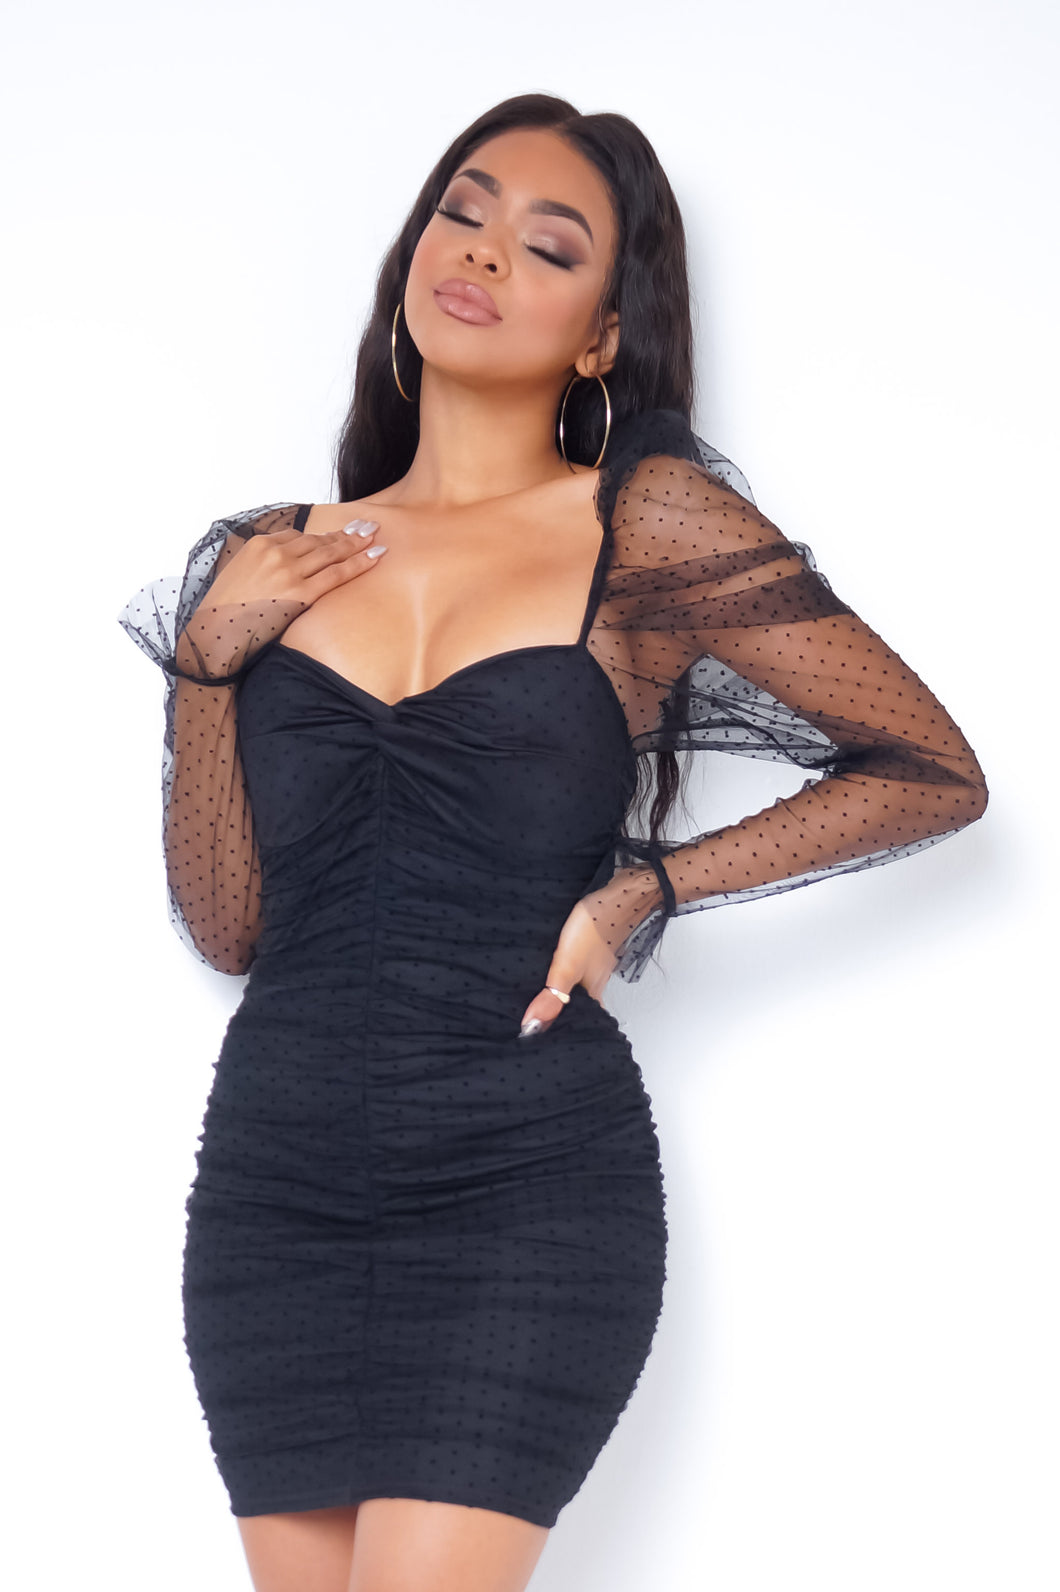 Lovebug Mini Dress - Black